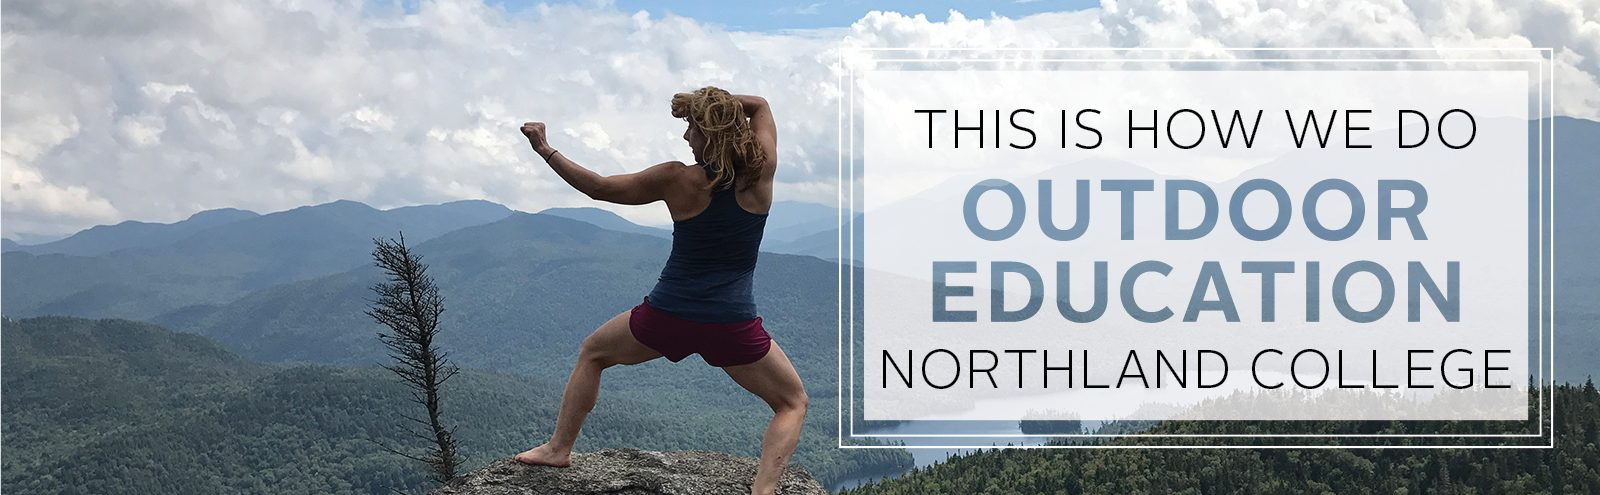 Northland College outdoor education